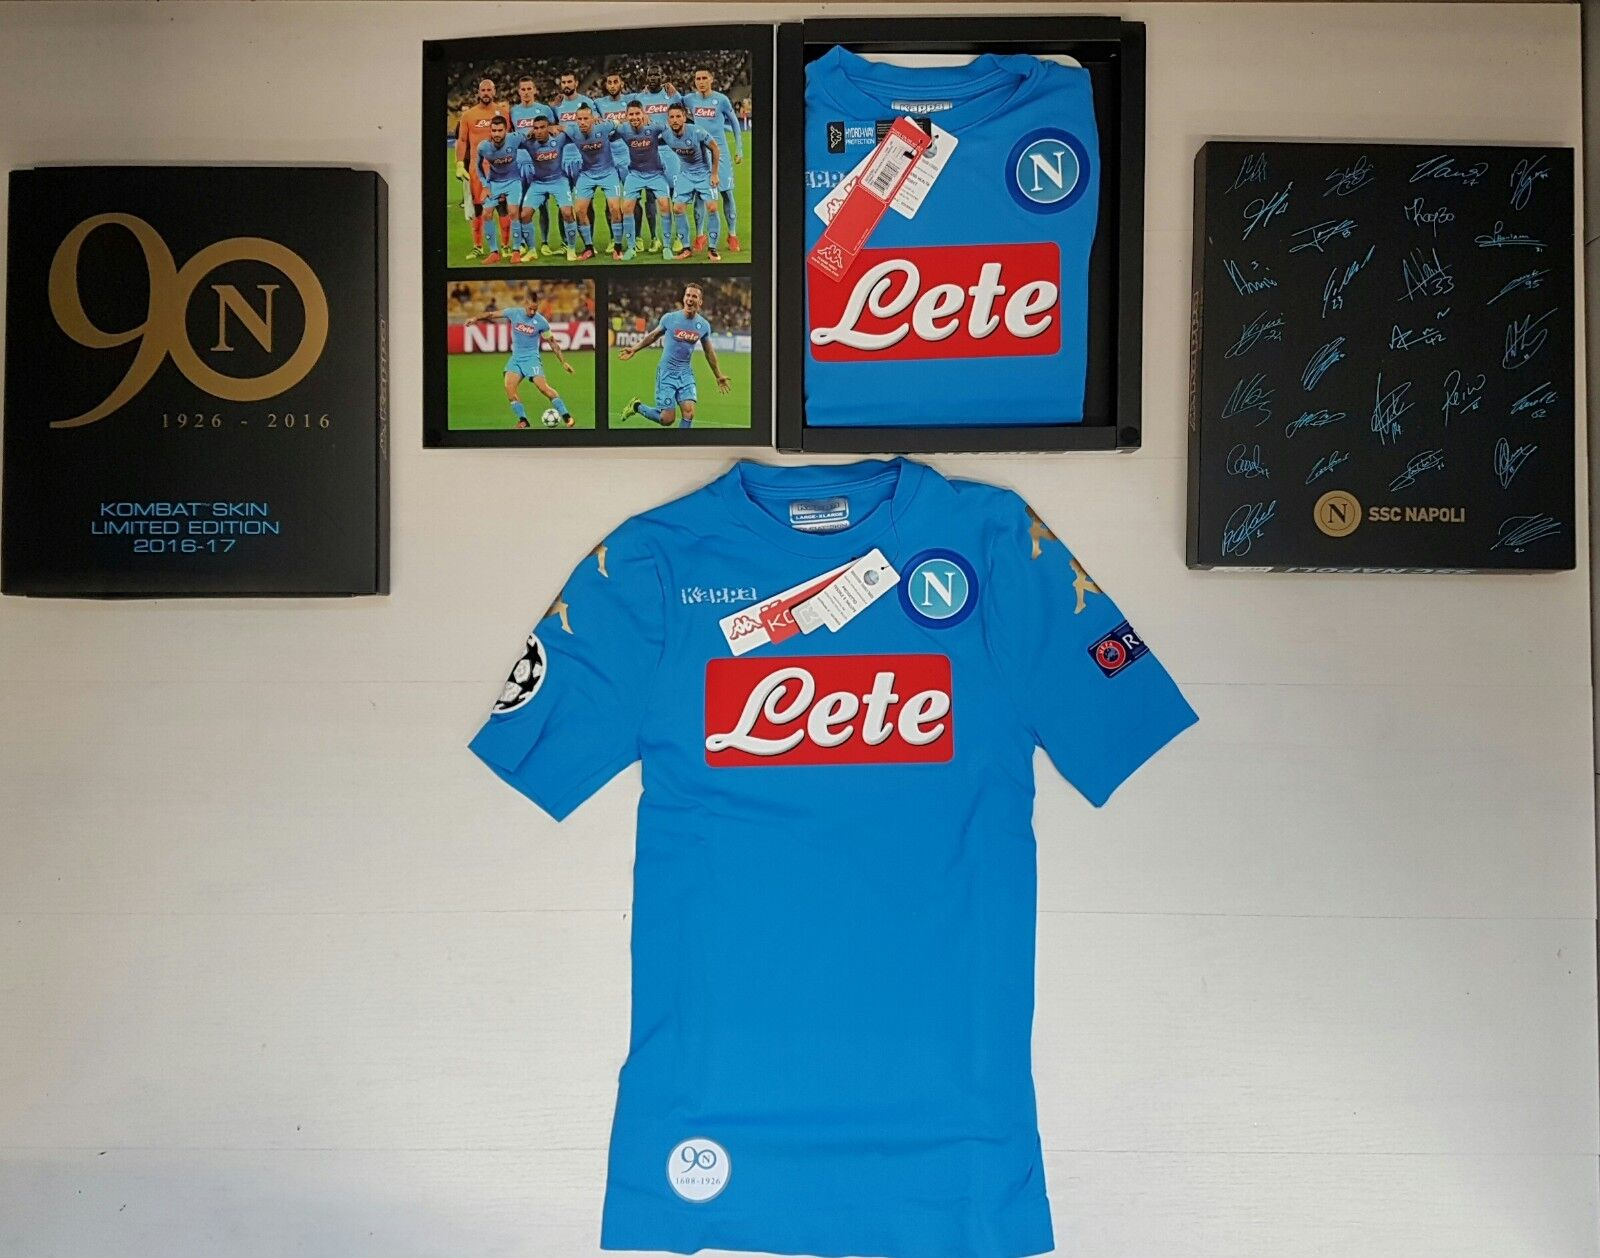 NAPOLI AUTHENTIC HOME JERSEY LIMITED EDITION 90th BOX CHAMPIONS LEAGUE SHIRT